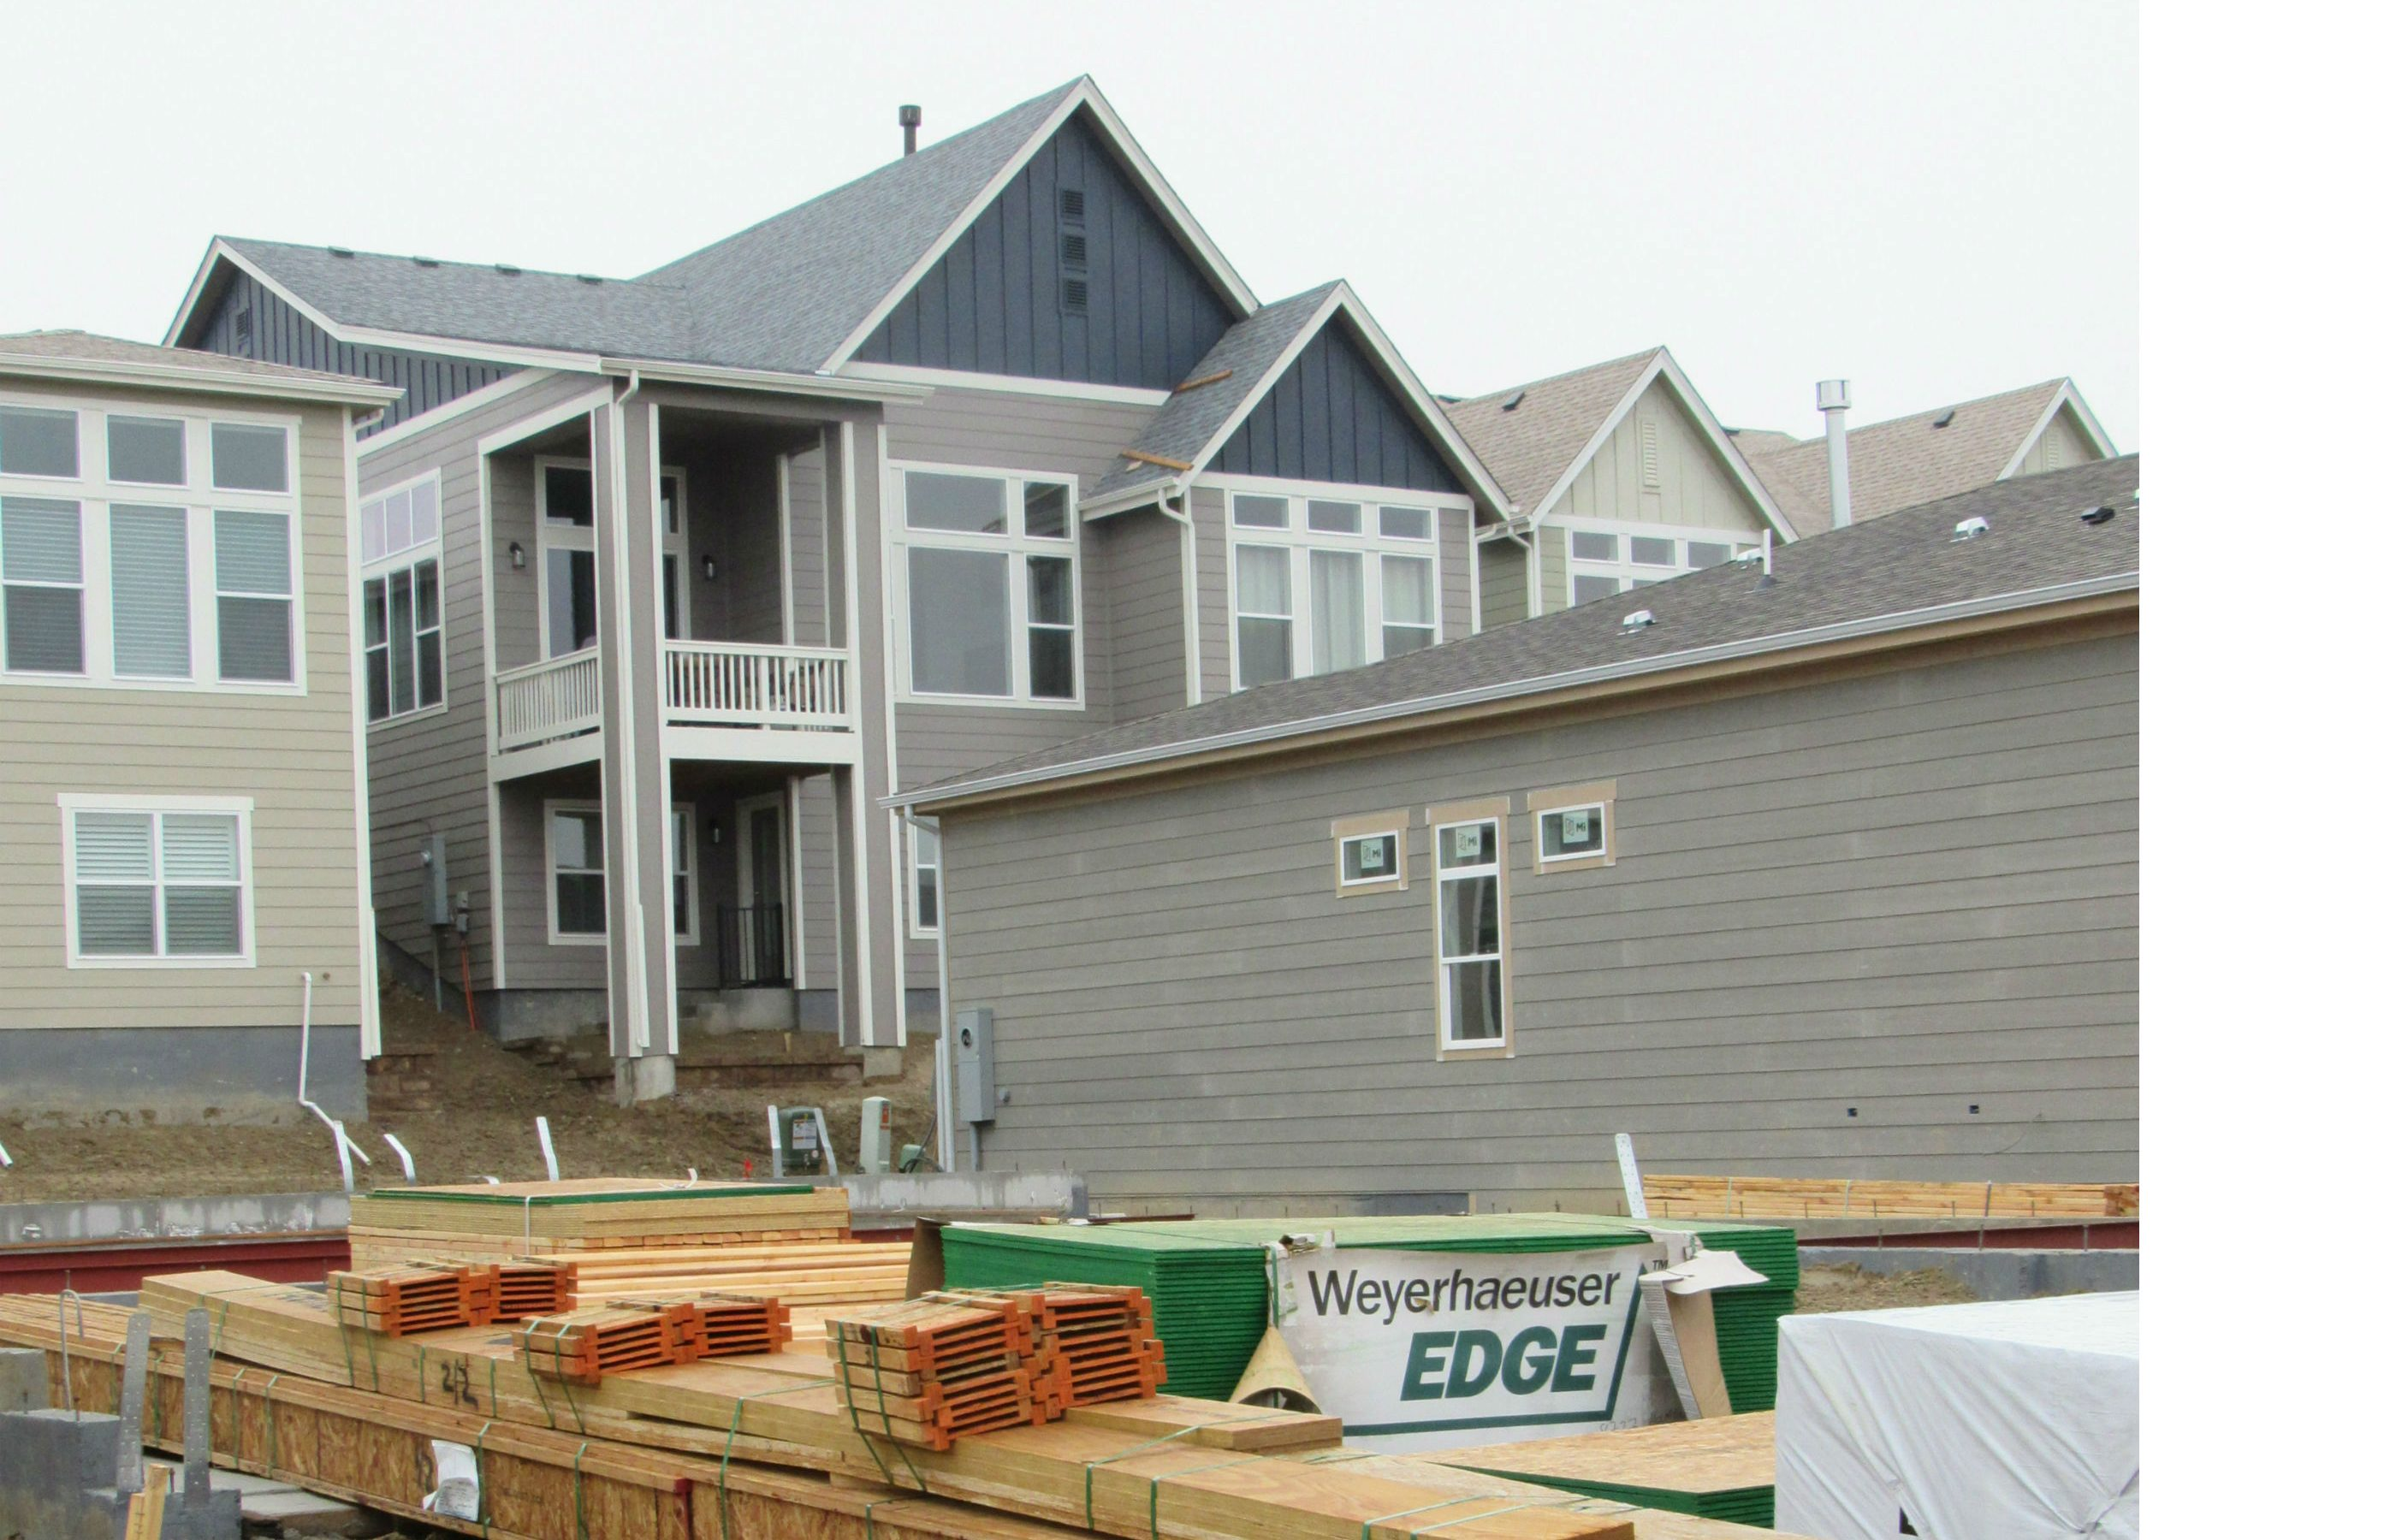 New homes going up in north west Arvada. The city has said it won't allocate more for water new homes in this area because it wants to save its remaining water supplies for commercial development. May 1, 2019 Credit: Jerd Smith